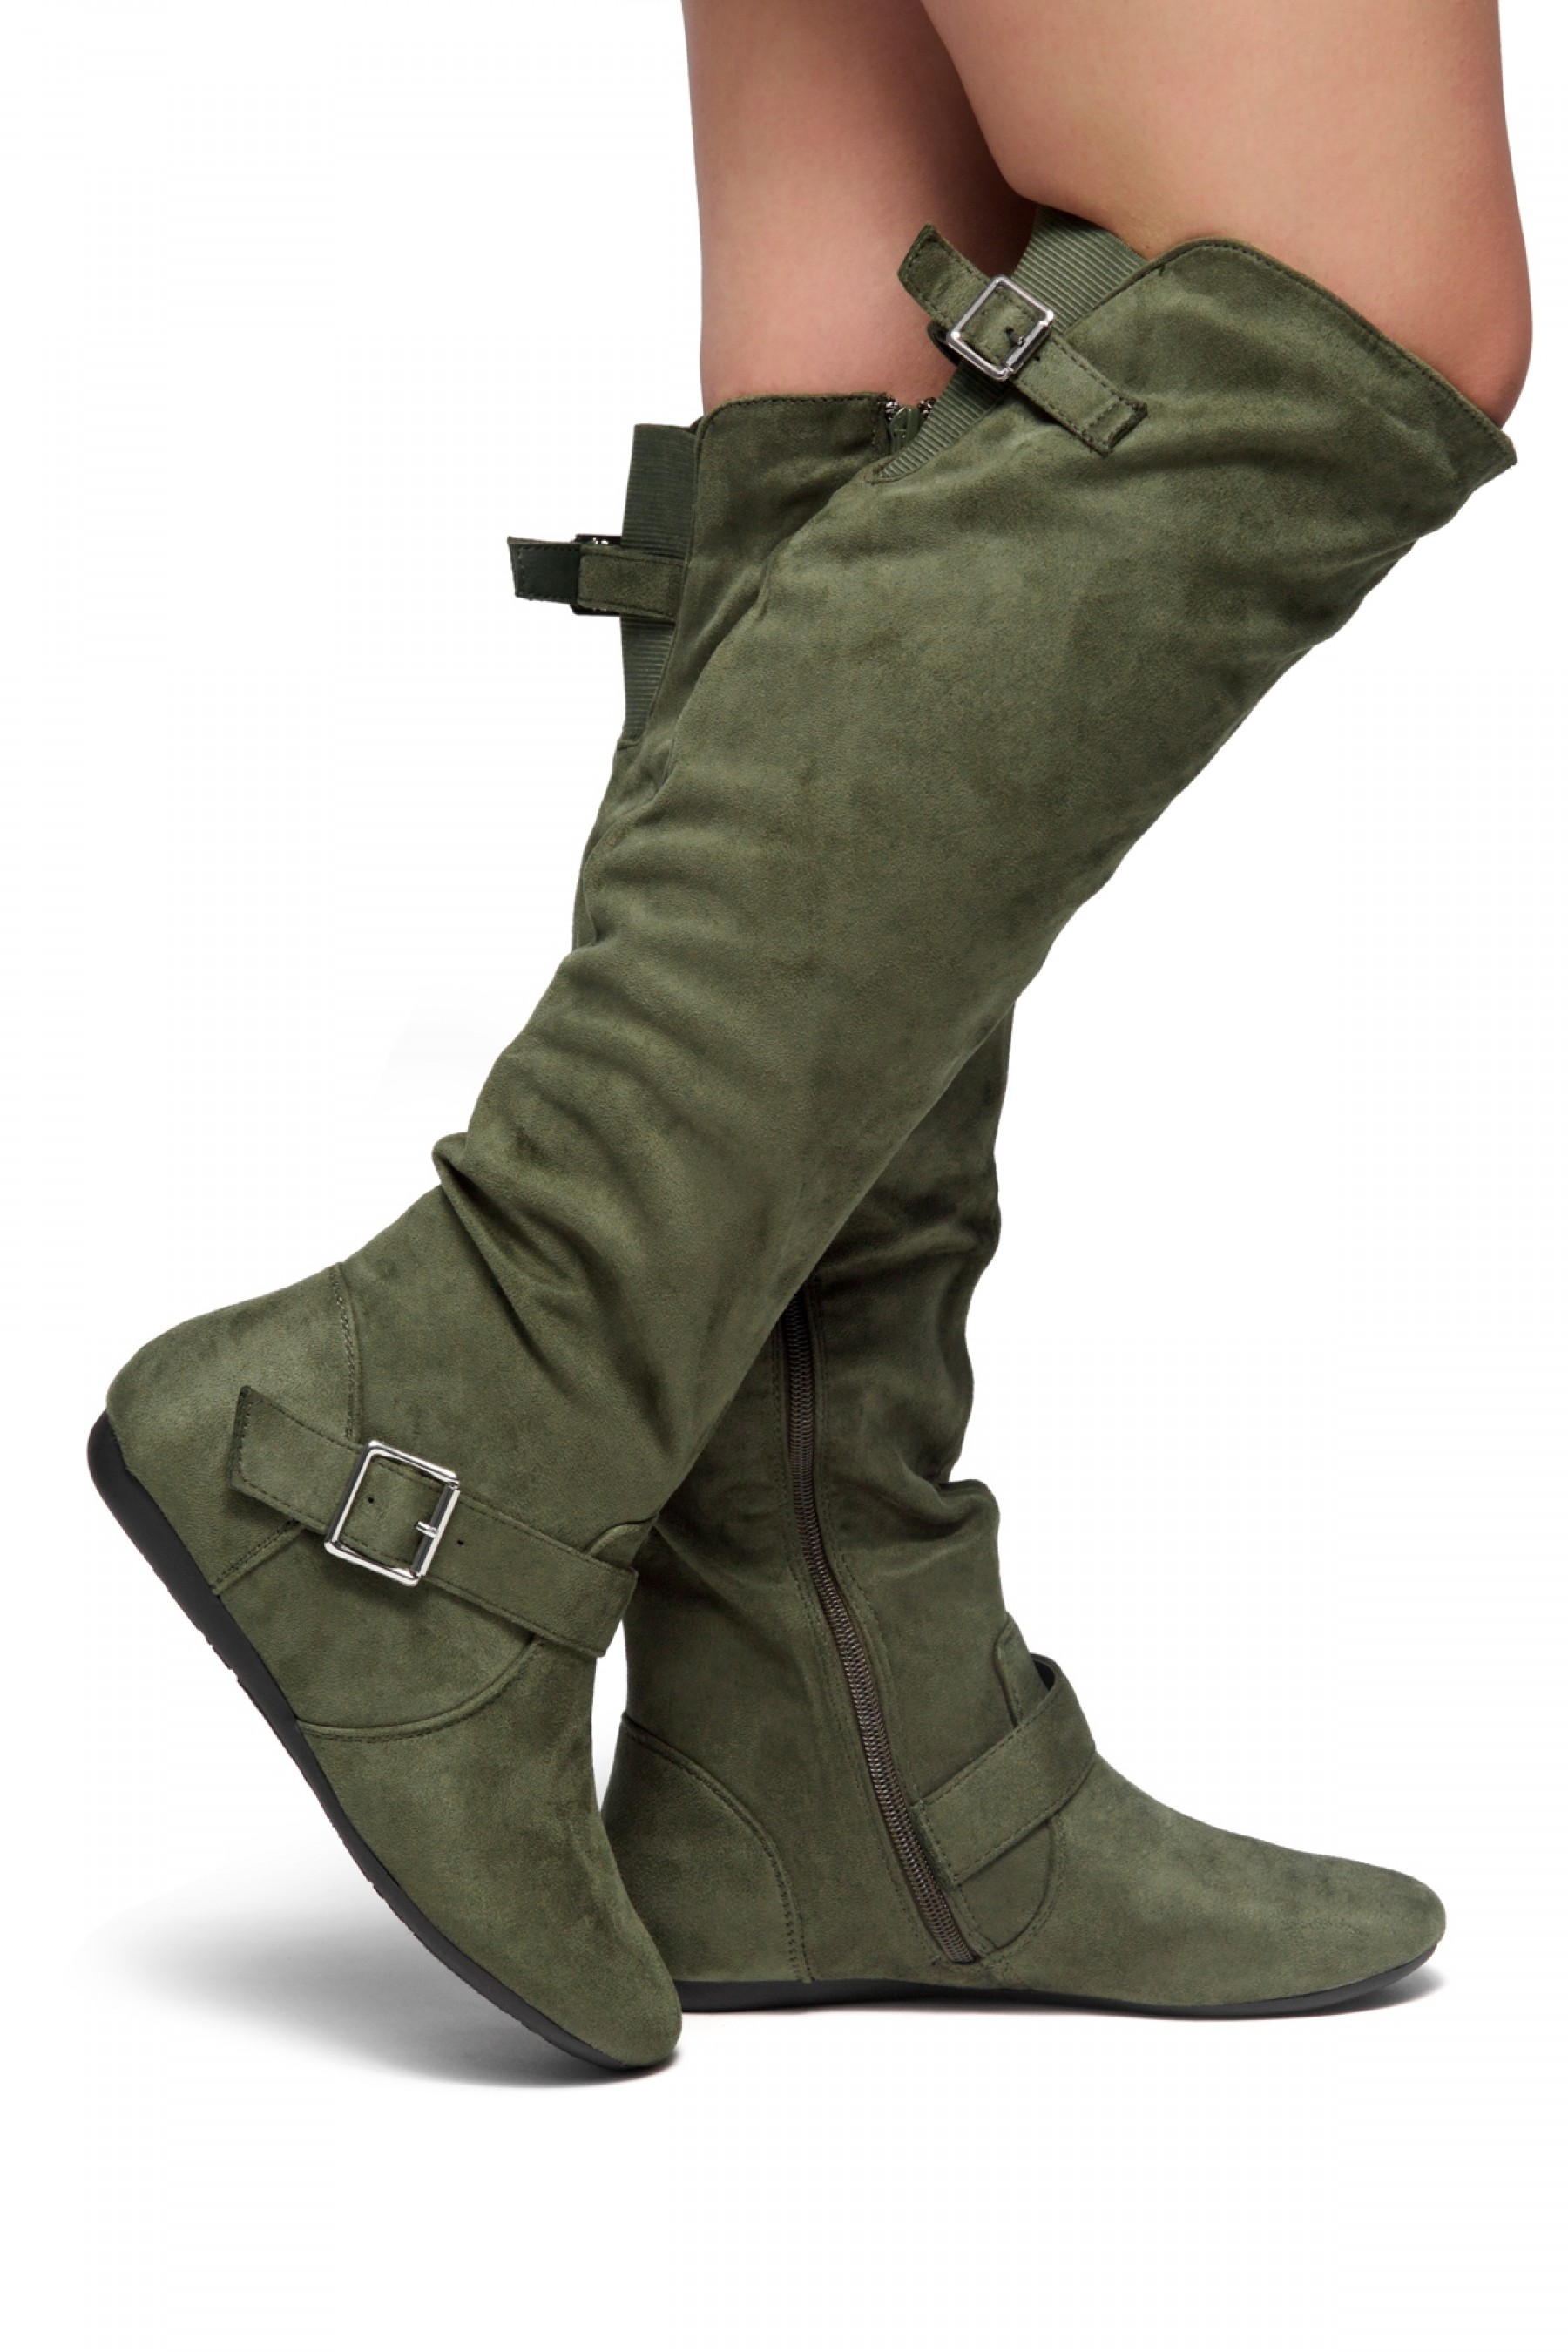 HerStyle Ieshia Thigh High Suede round toe flat boots (Olive)